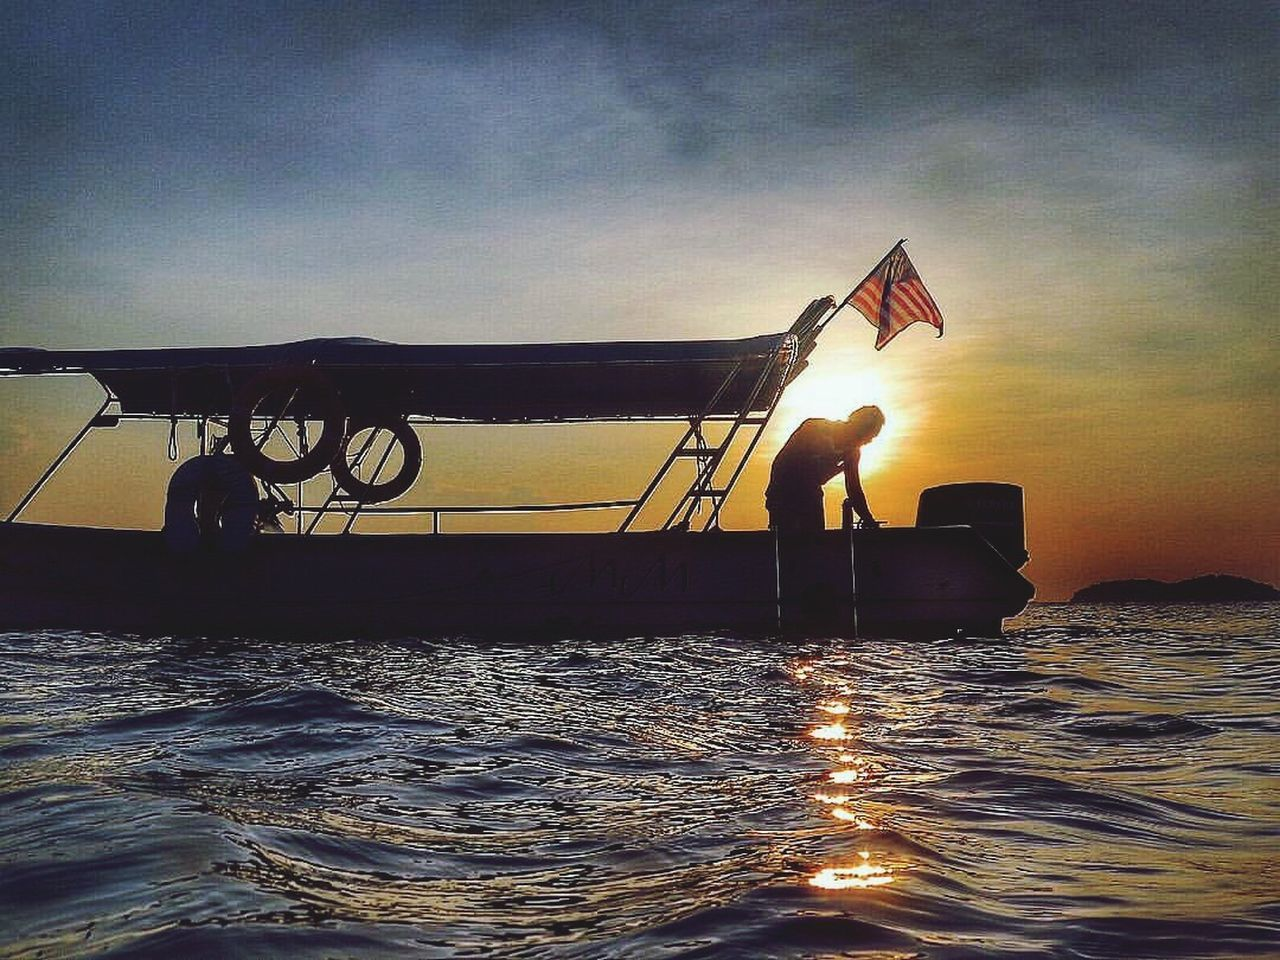 Just another day at work Water Sea Flag Sunset Sky Nautical Vessel Waterfront Outdoors Nature One Person Day People Tioman Sihouette  Boat